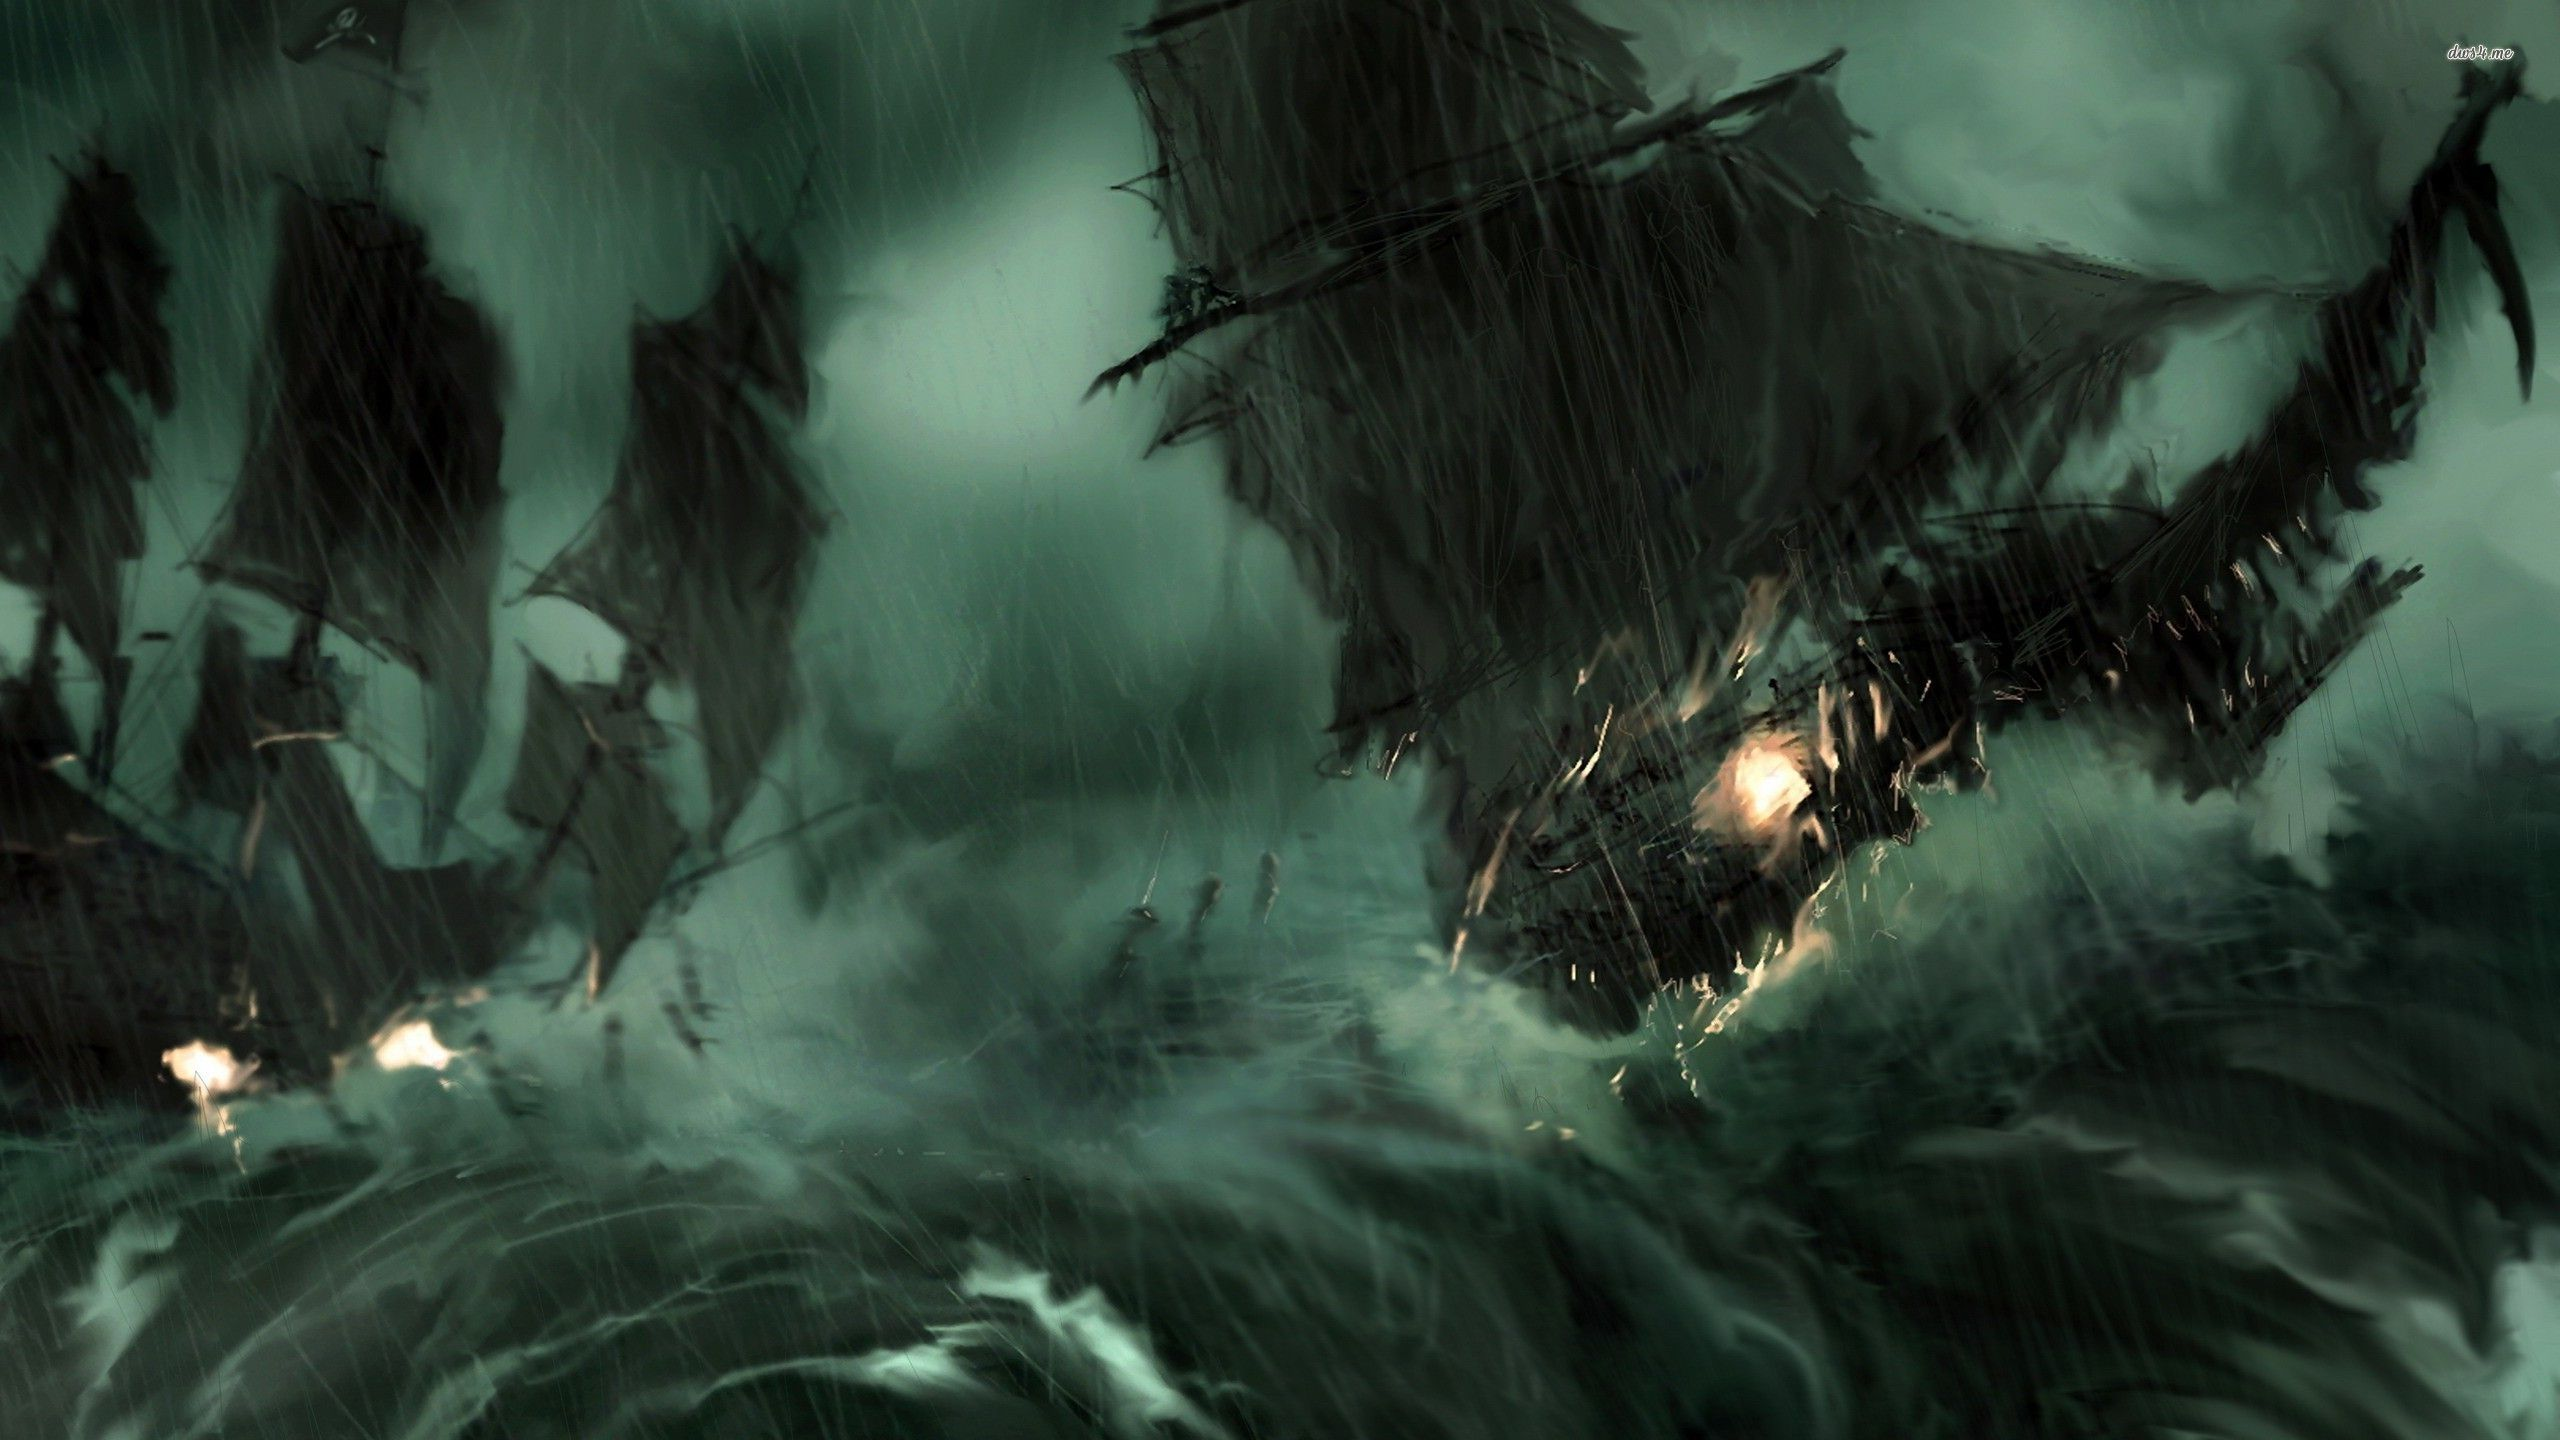 Medieval Ship Entering The Island X Fantasy Wallpaper Ghost Ship Storm Wallpaper Pirate Pictures